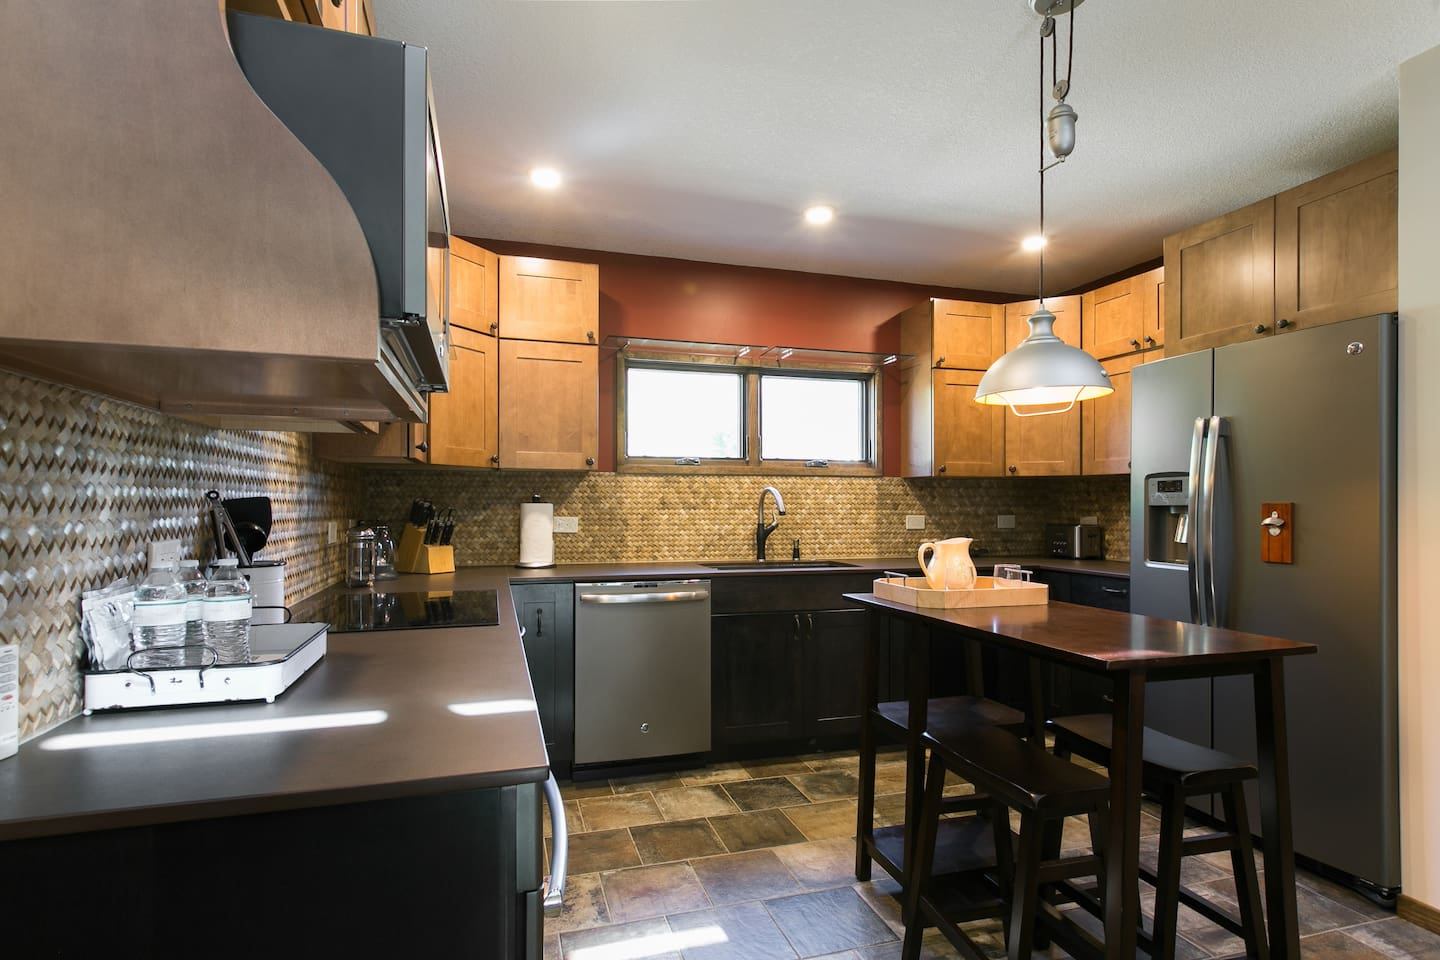 """As a Celebrity Chef I have to say this kitchen design is outstanding for cooking for your family & friends . You are right there with them. """"Quality time is what's all about""""  Layout is unbeatable and high end equipment throughout you can not beat!!"""